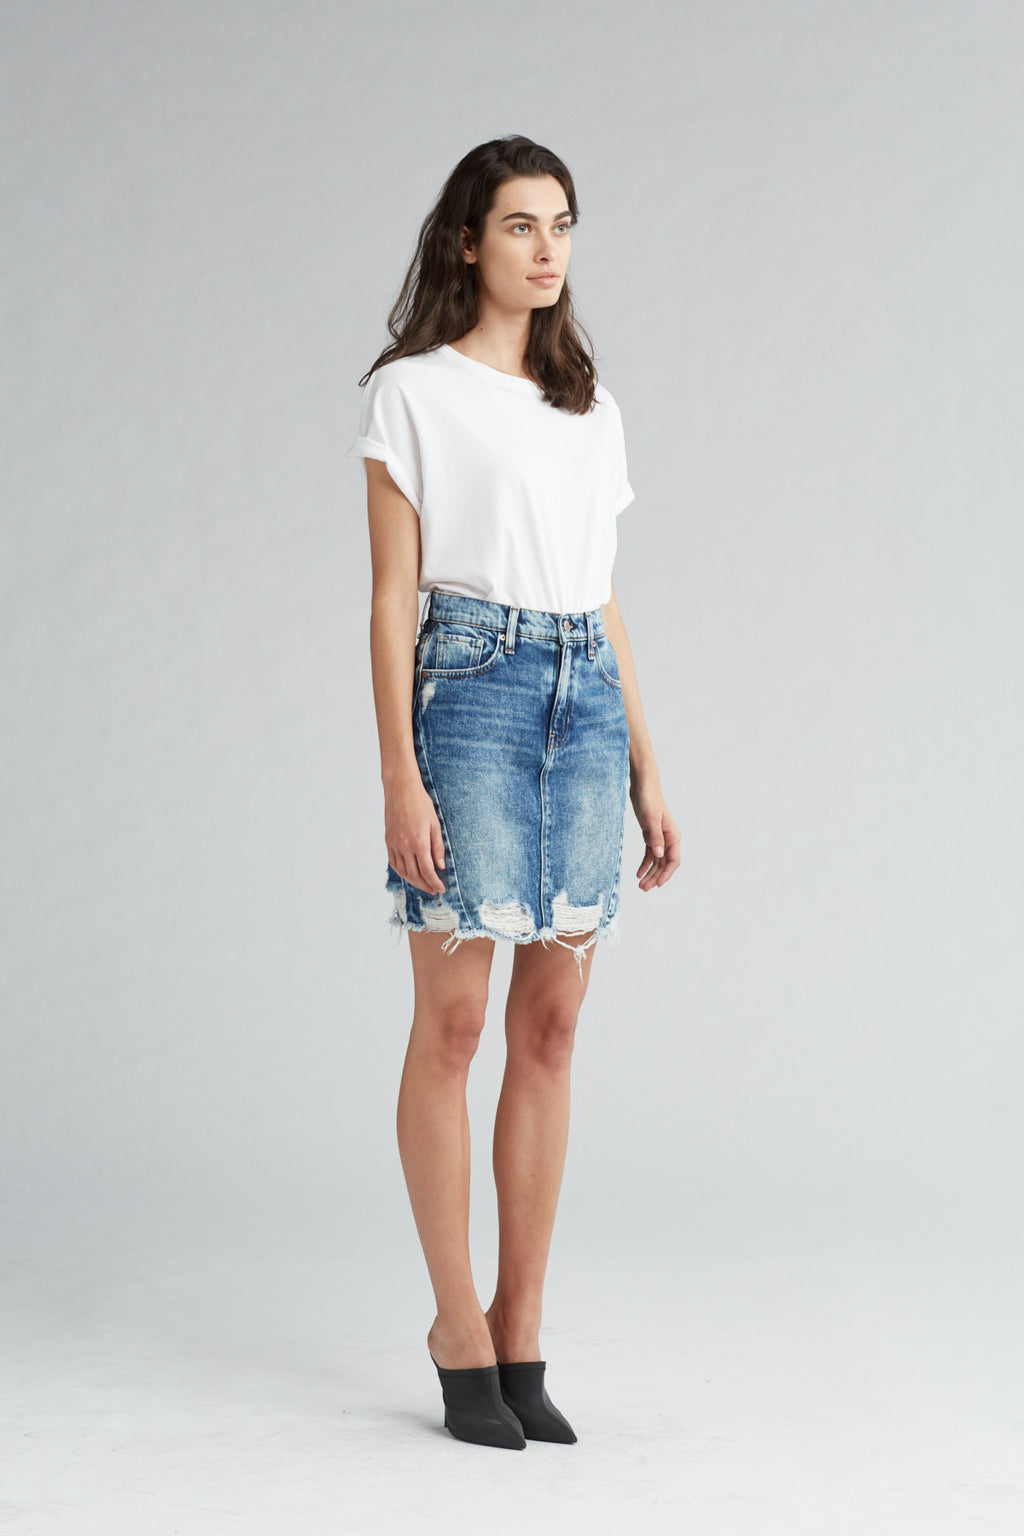 LULU DENIM PENCIL SKIRT - OVERSHADOW - Image 2